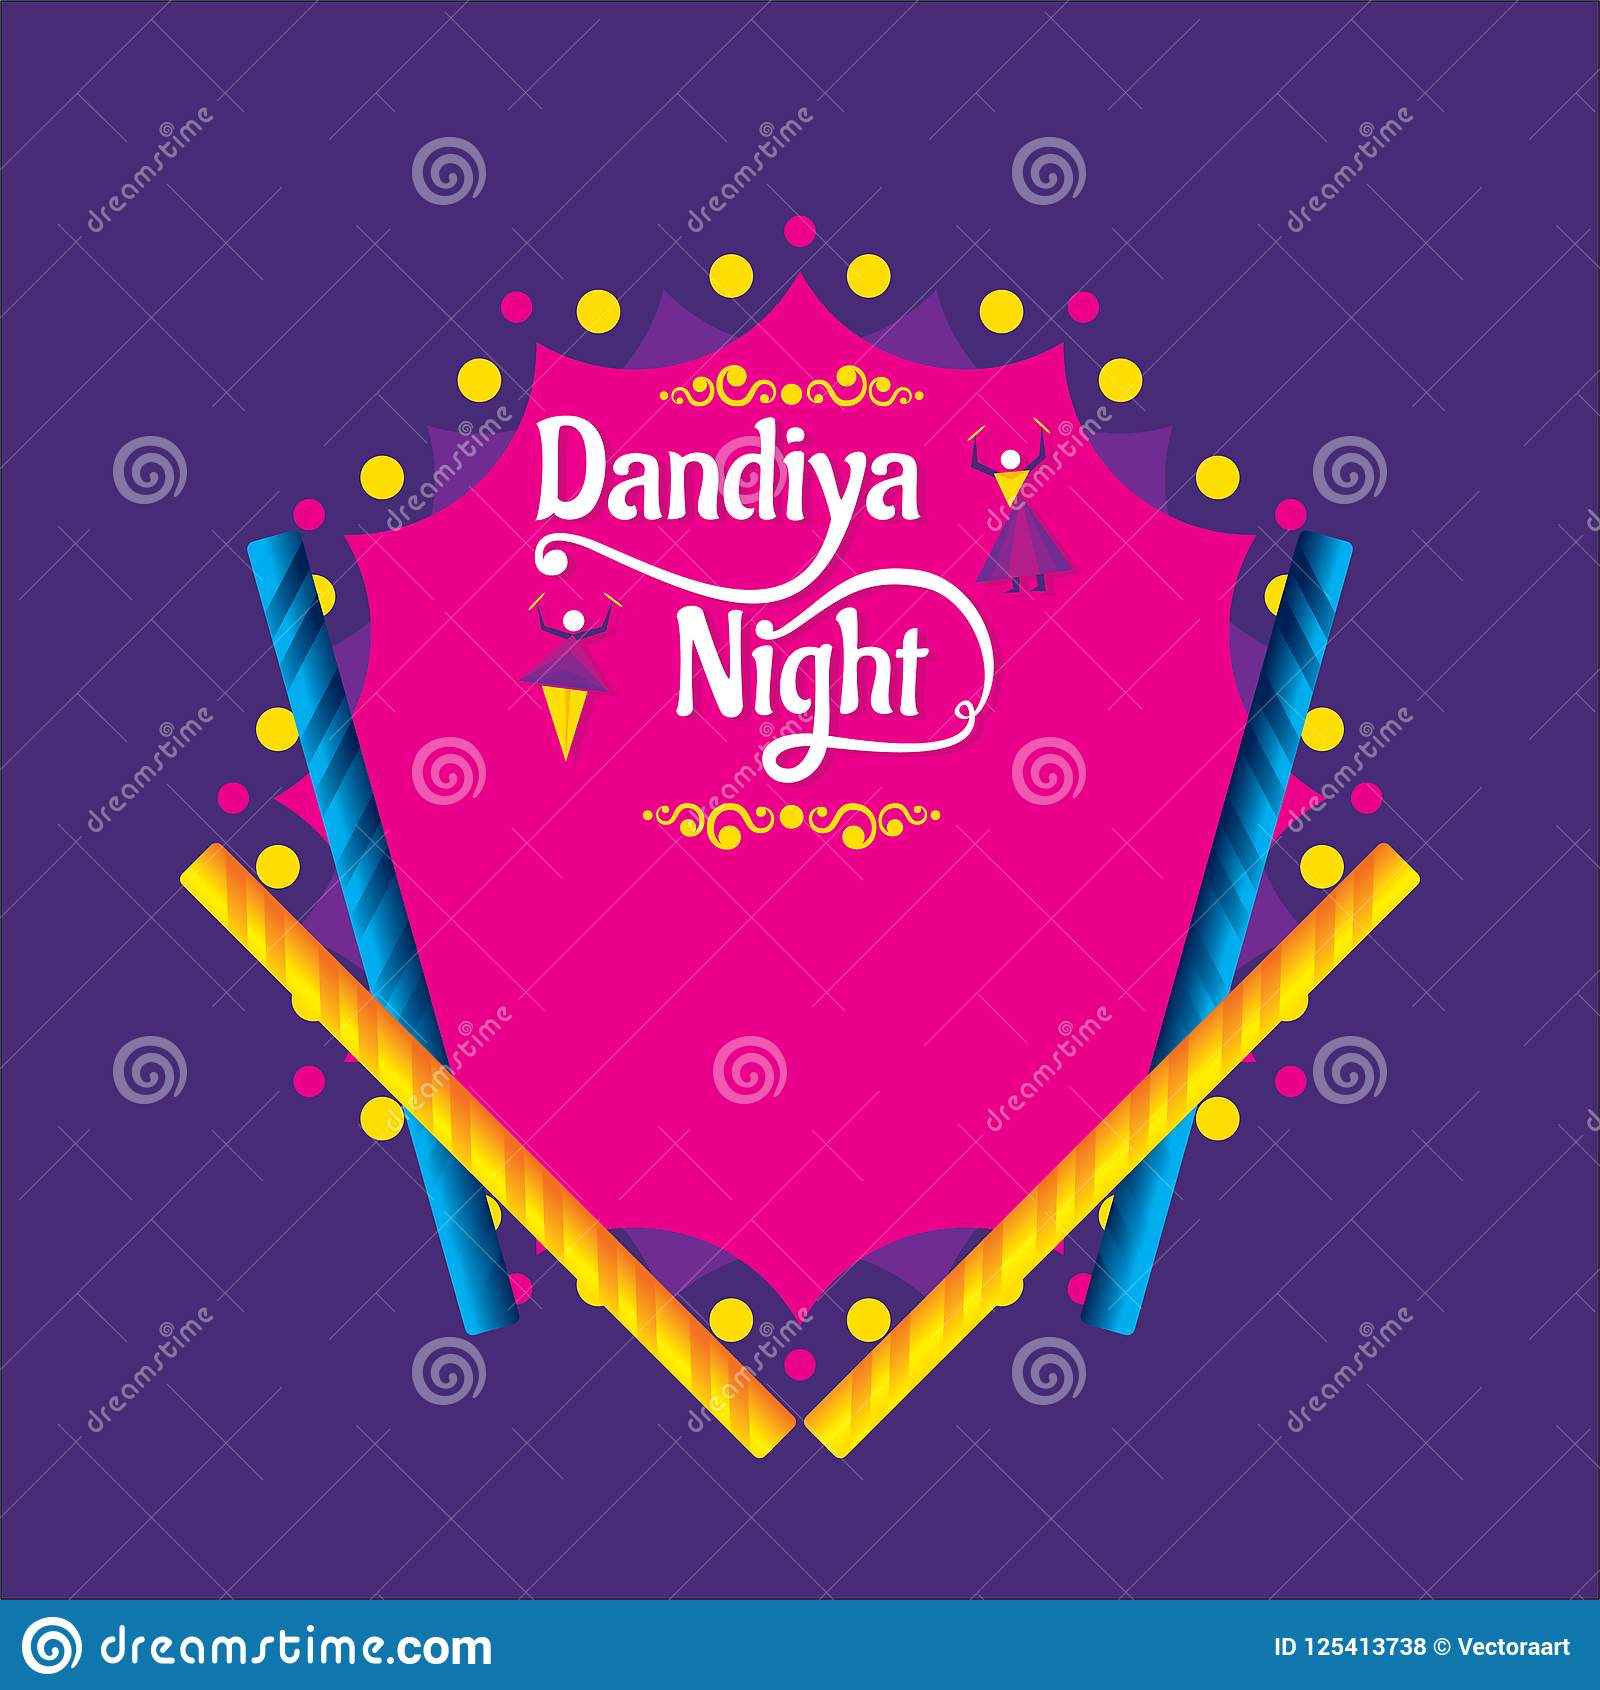 Creative Dandiya Night Invitation Card Design Stock Vector